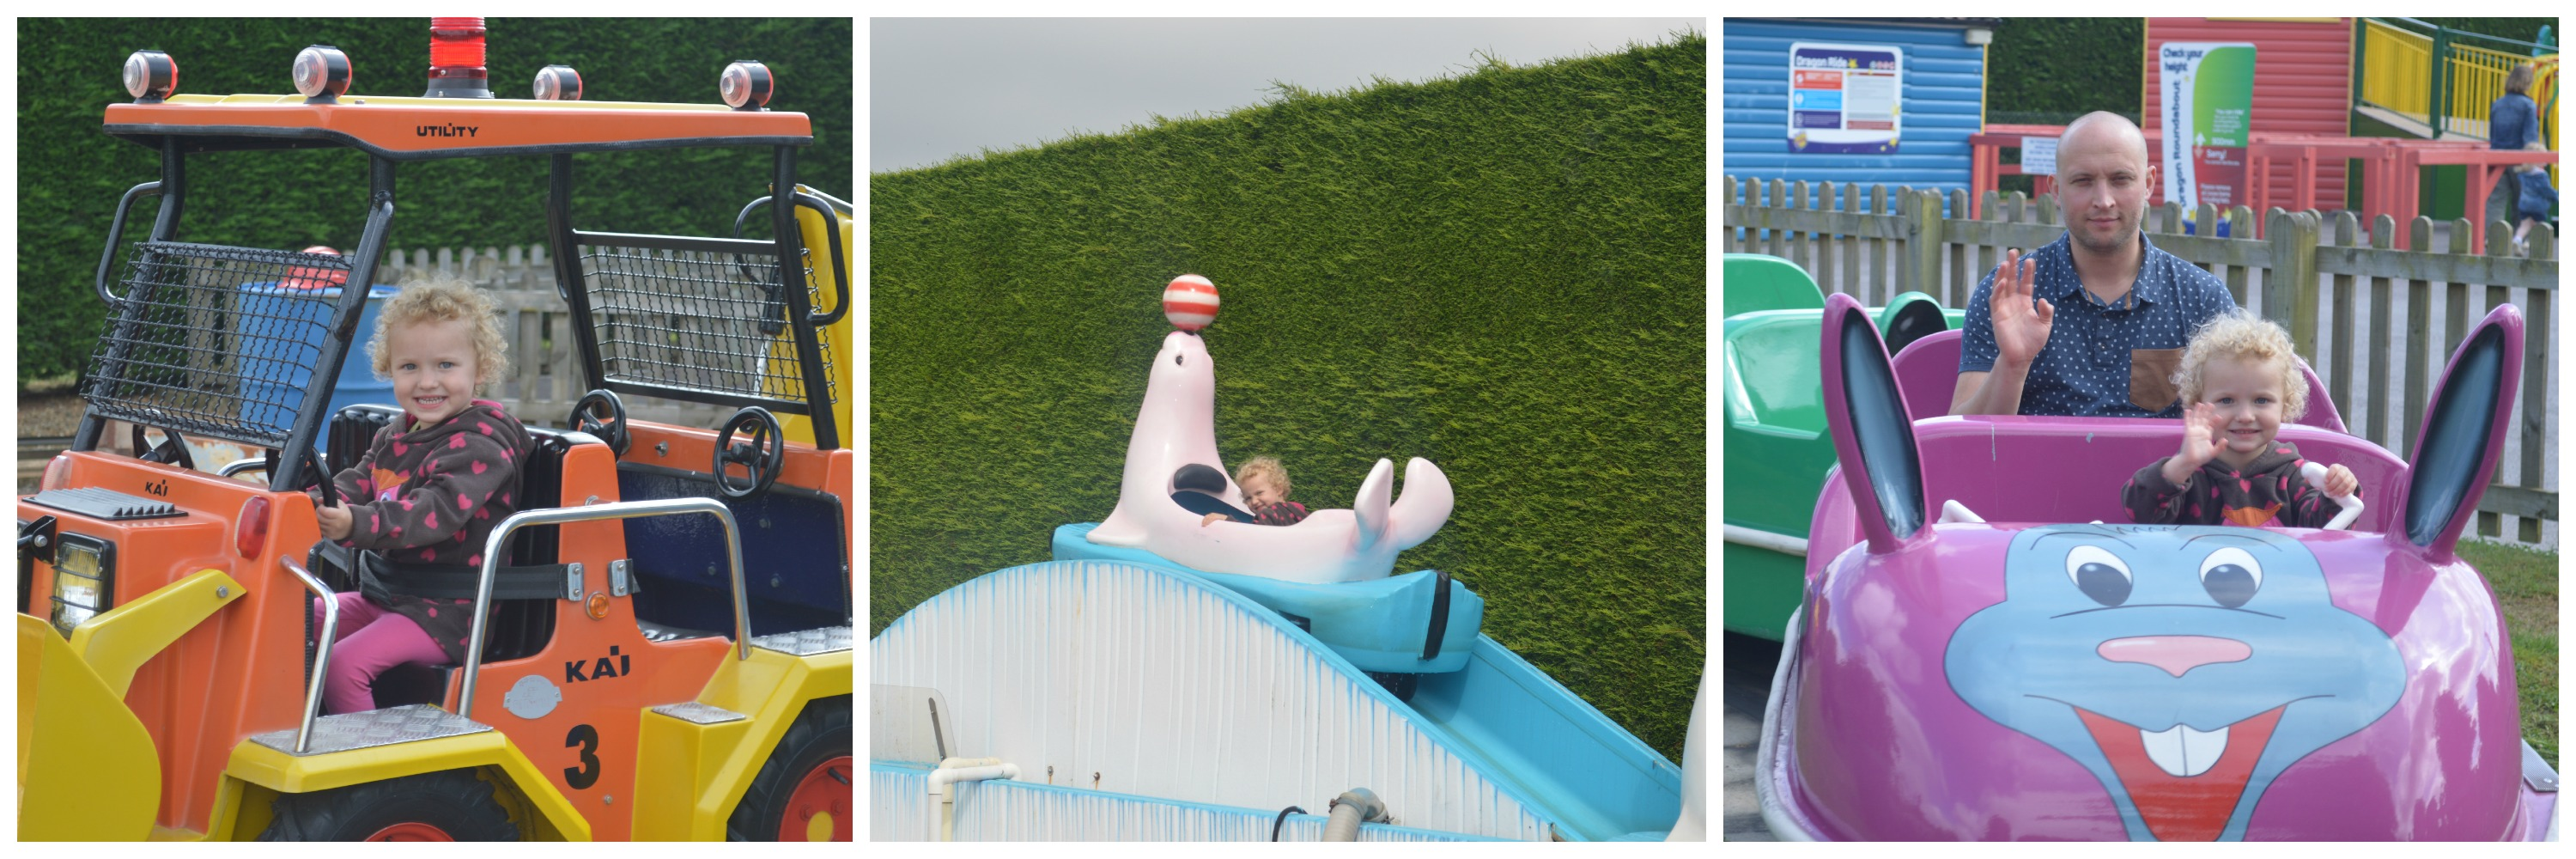 The Best Theme Park We've Been To – Paultons Park And